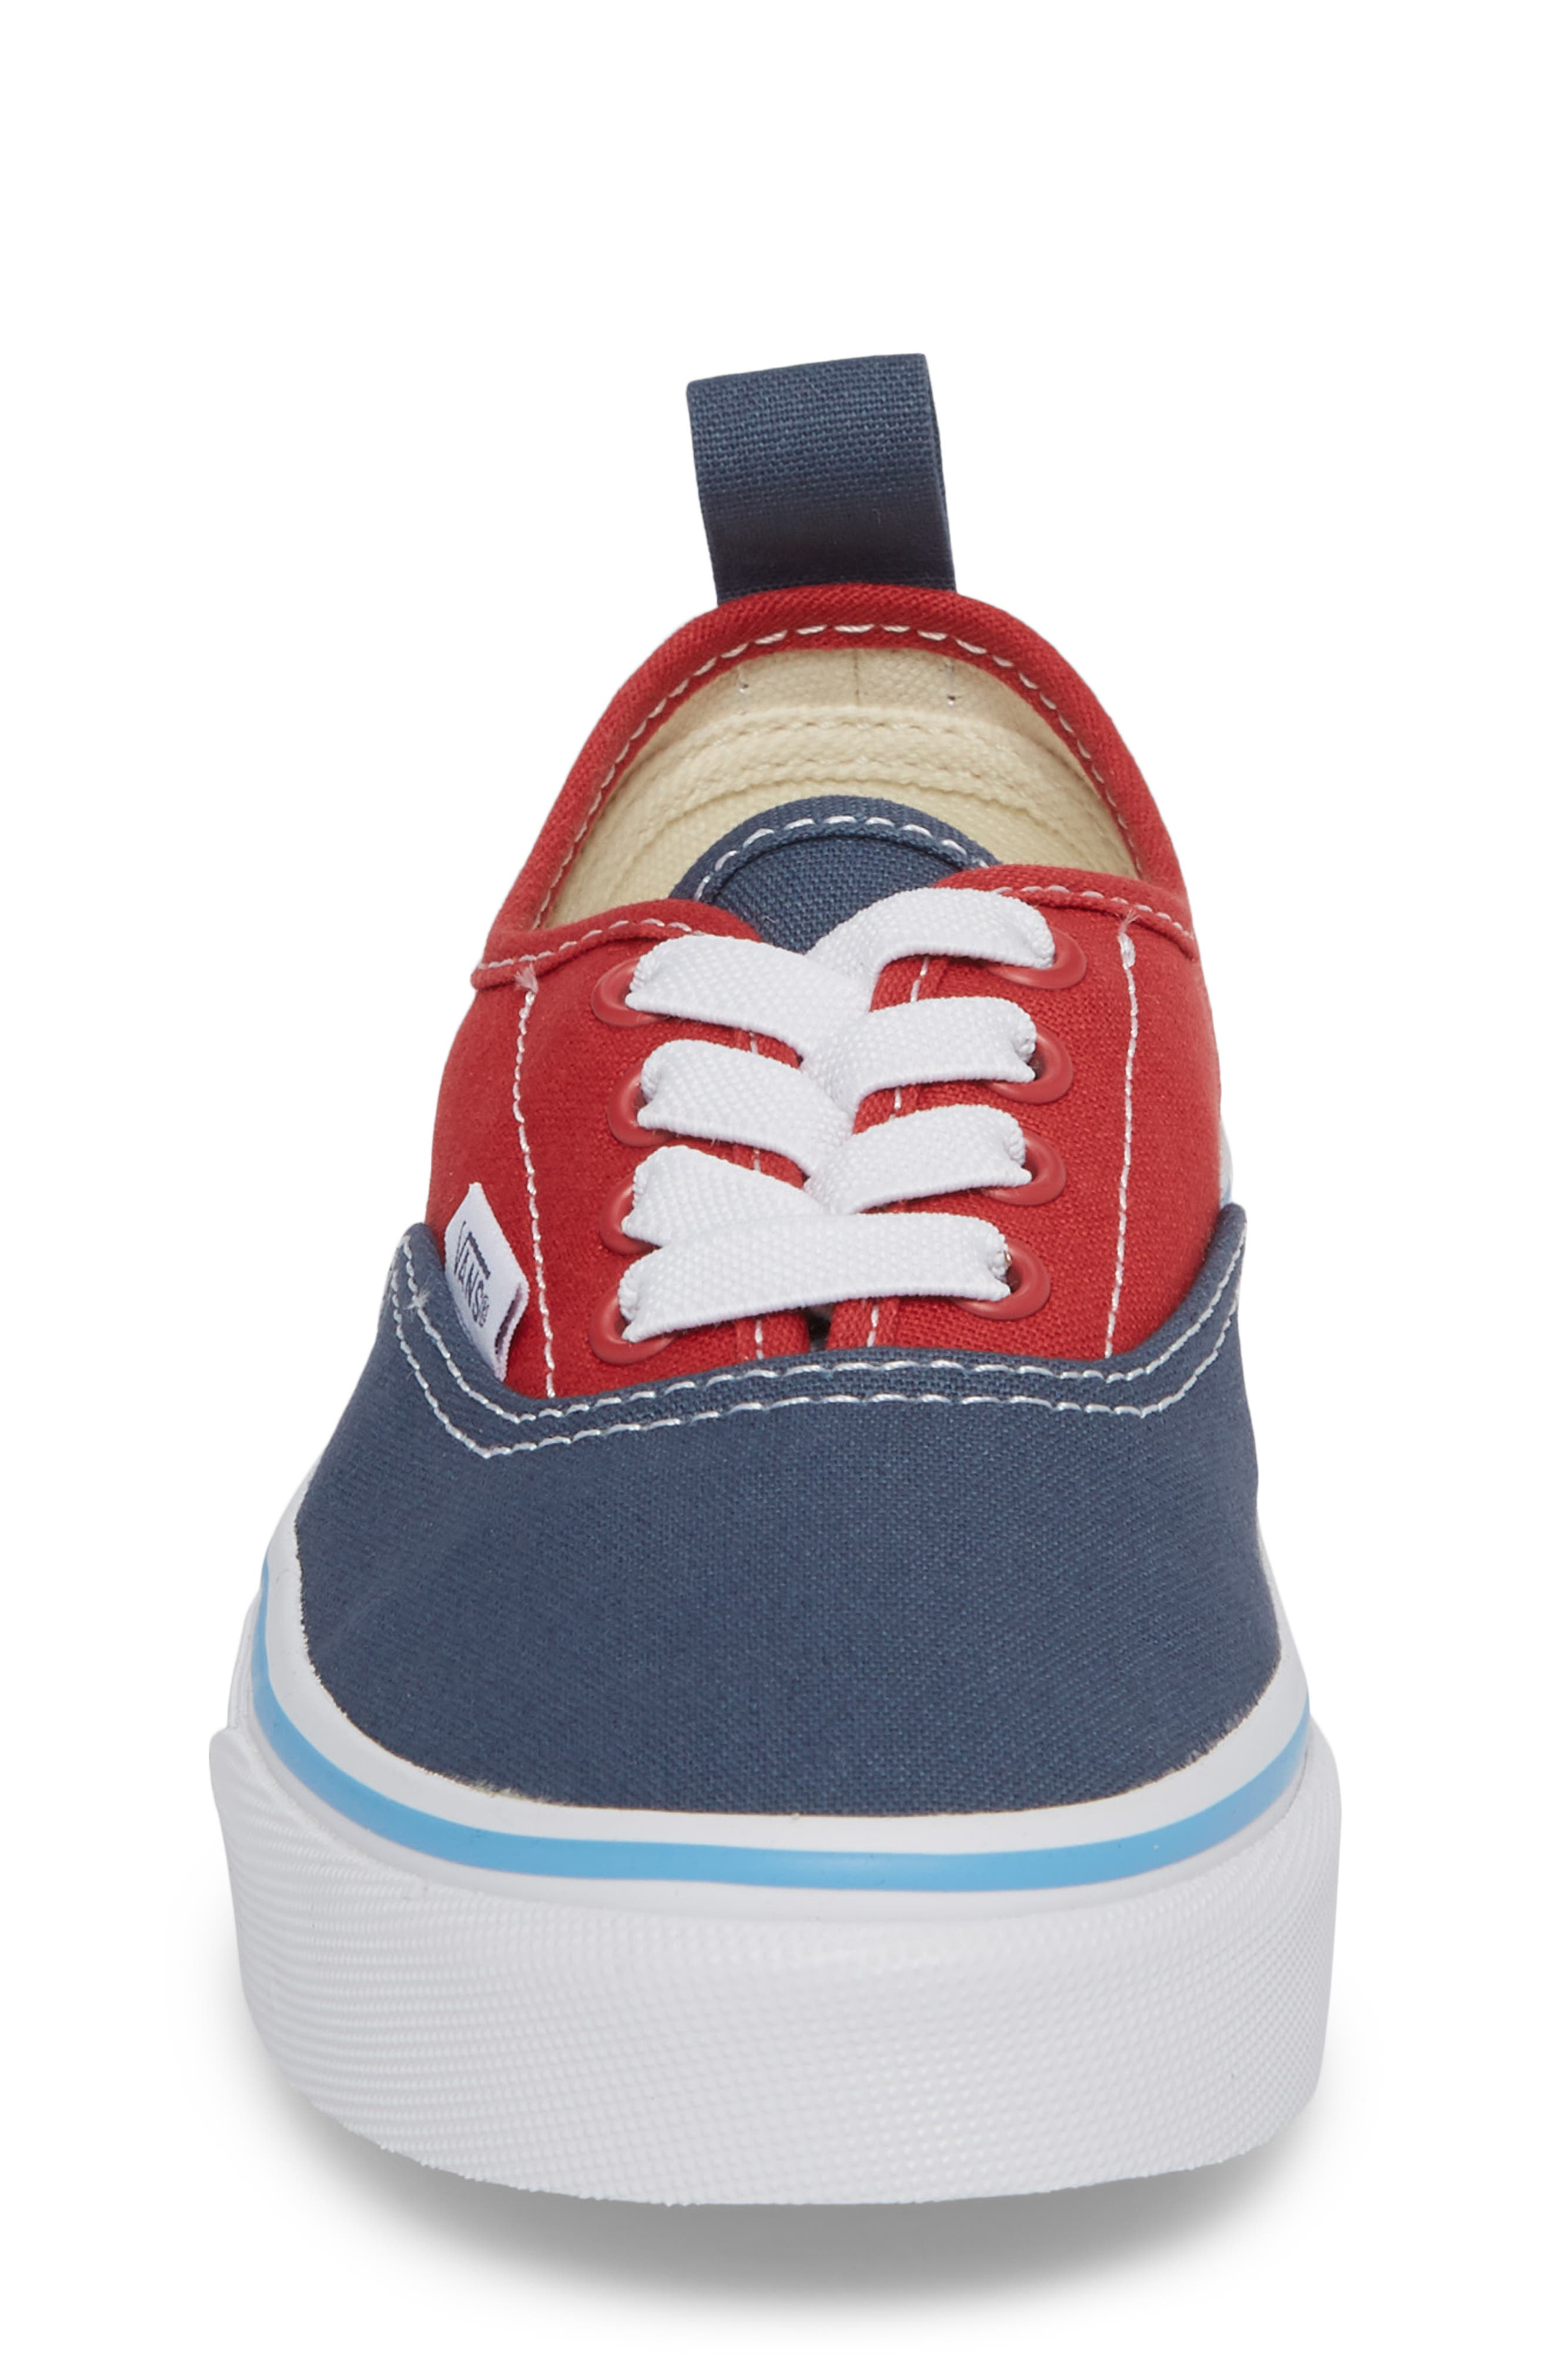 Authentic Low Top Sneaker,                             Alternate thumbnail 4, color,                             Indigo/ Blue/ Red Tri Pop